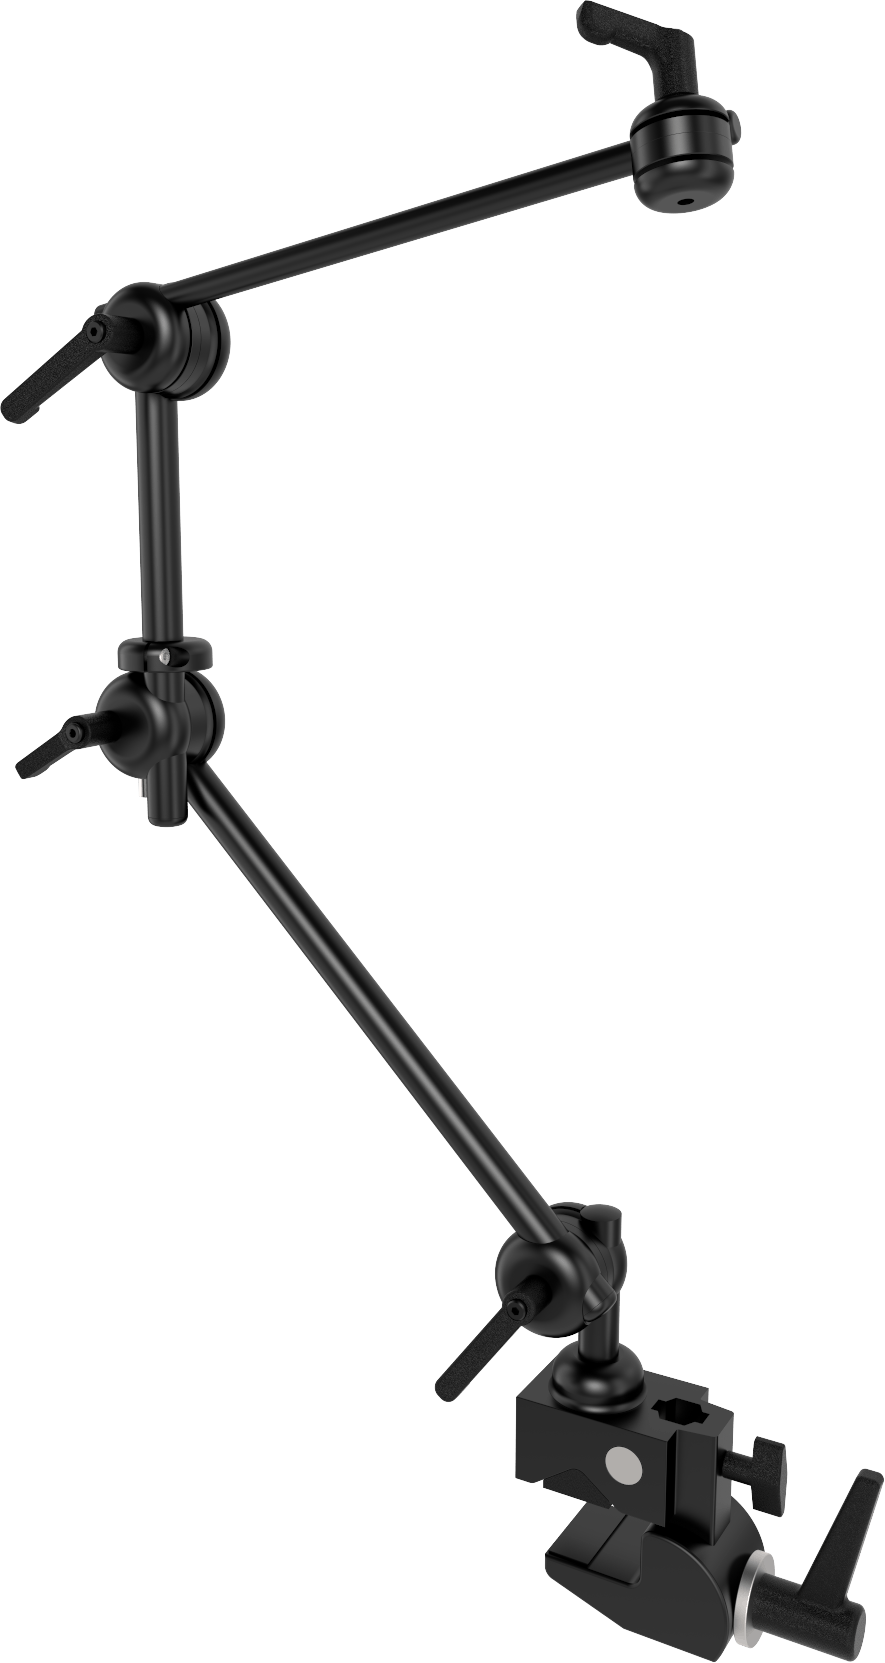 Light 3D table mount with three tubes and a clamp, by Rehadapt.